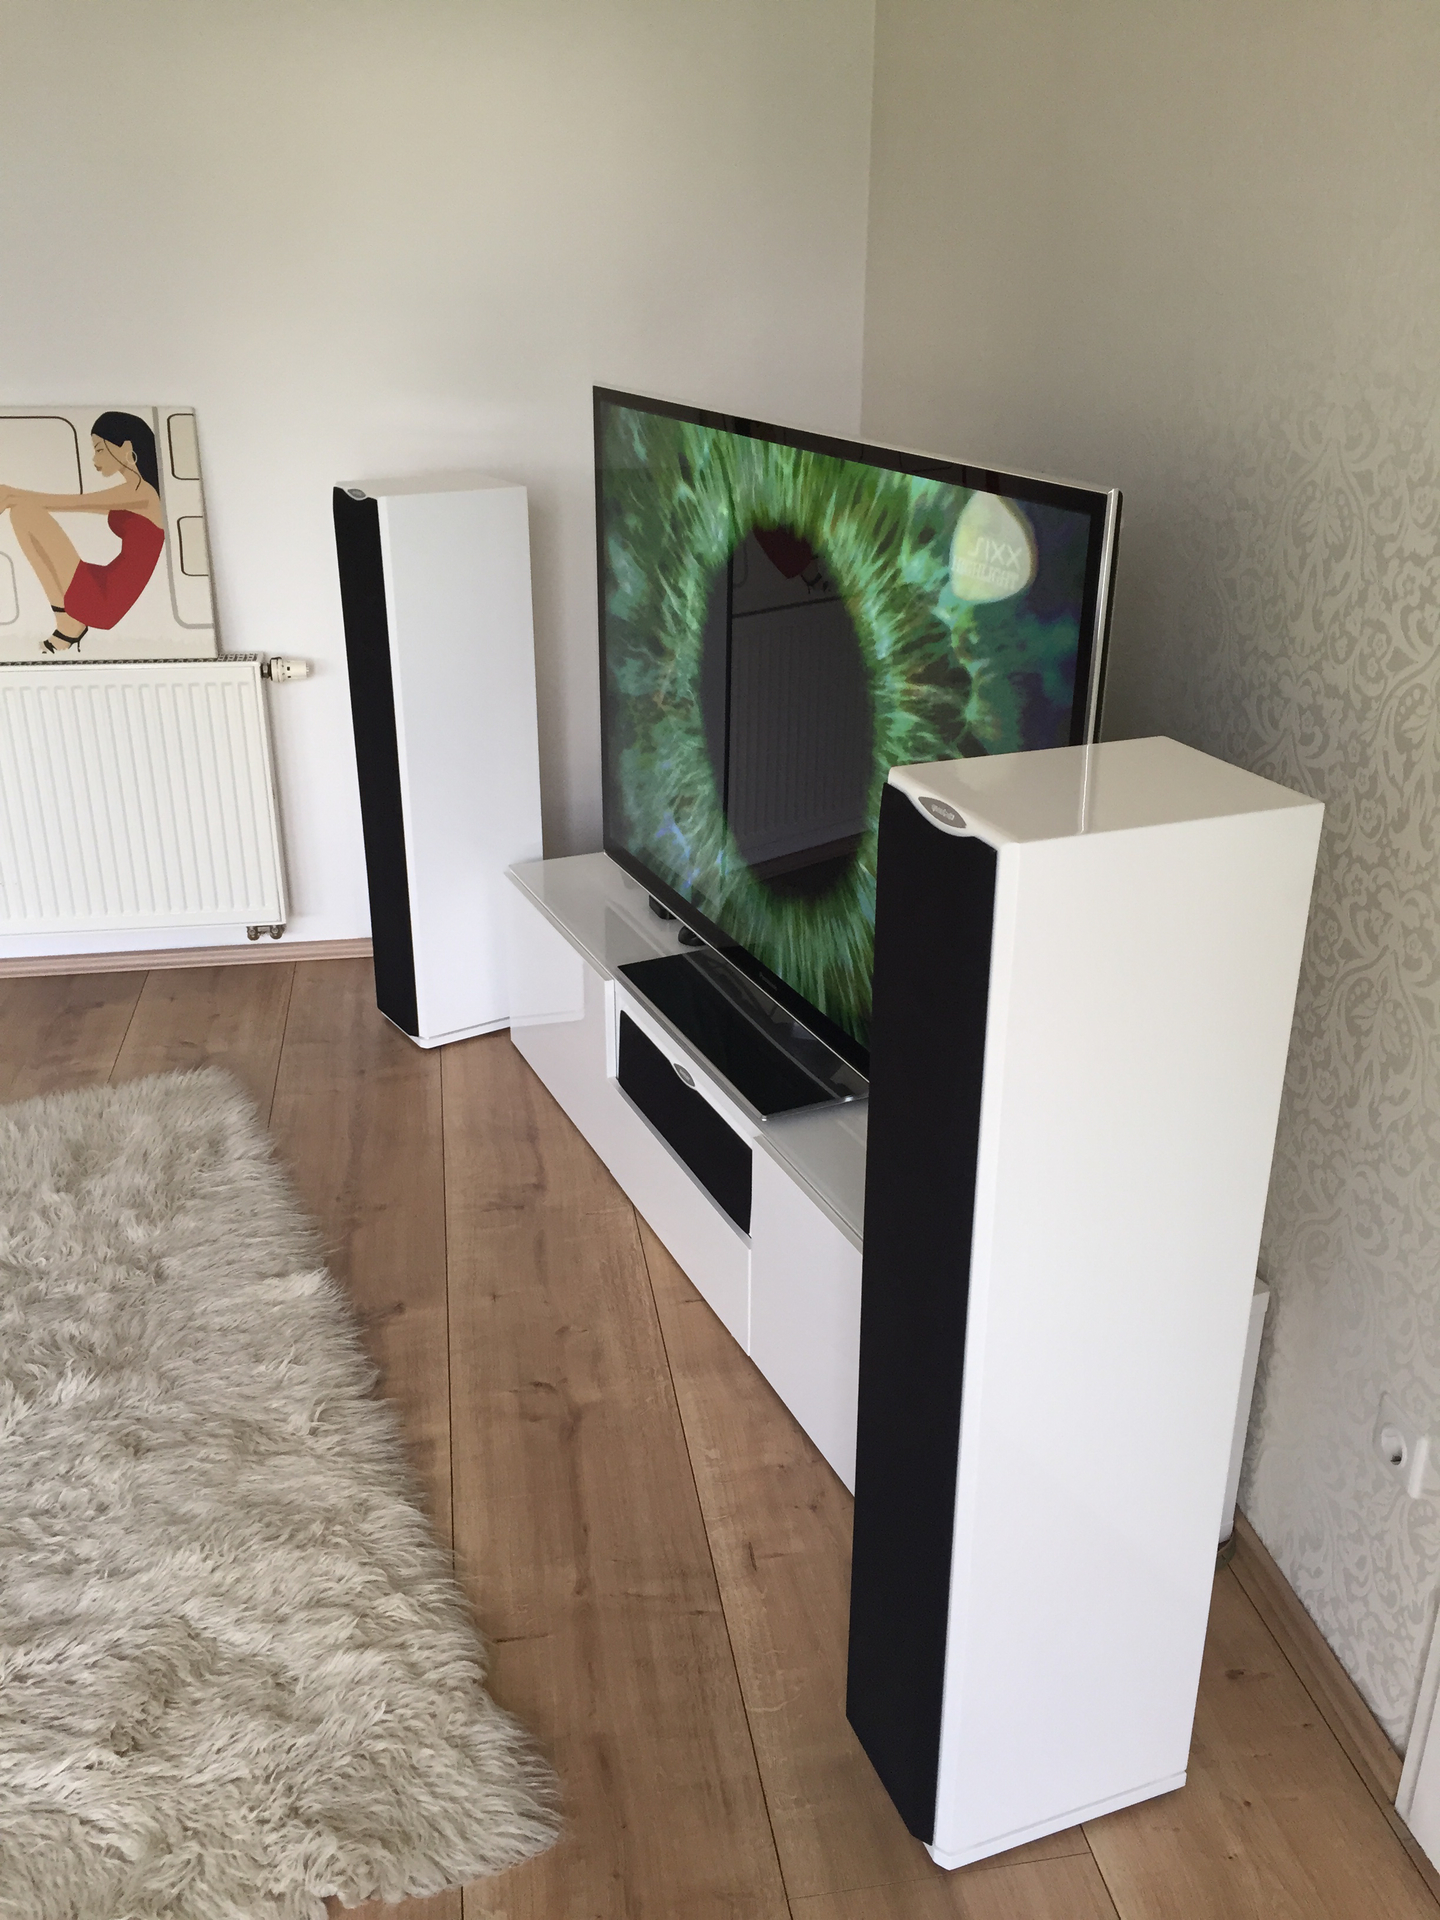 ikea besta tv lowboard besta ikea tvlowboard hifi bildergalerie. Black Bedroom Furniture Sets. Home Design Ideas